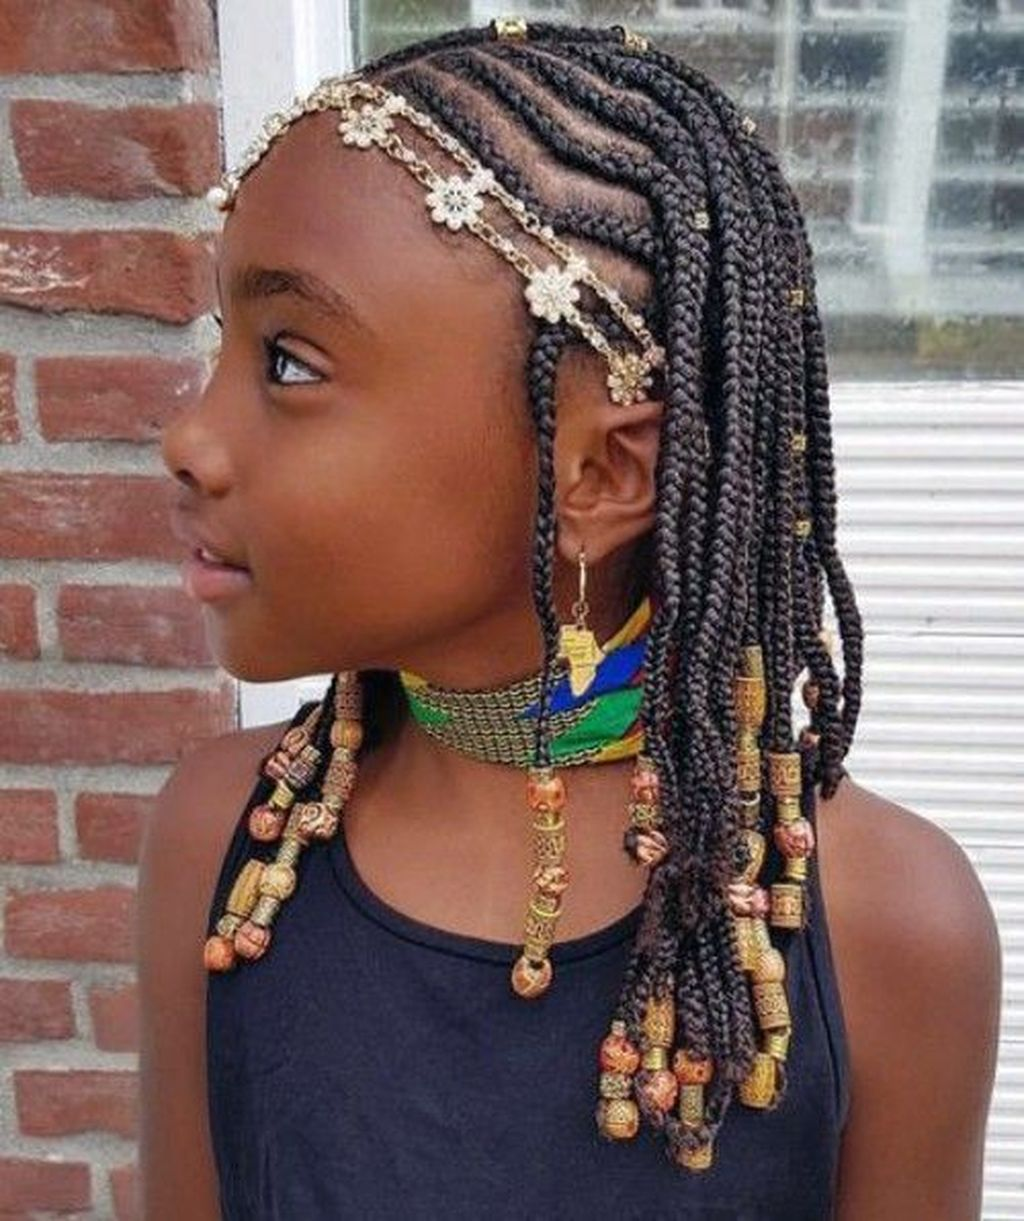 35 outstanding kids braided hairstyle ideas with beads to